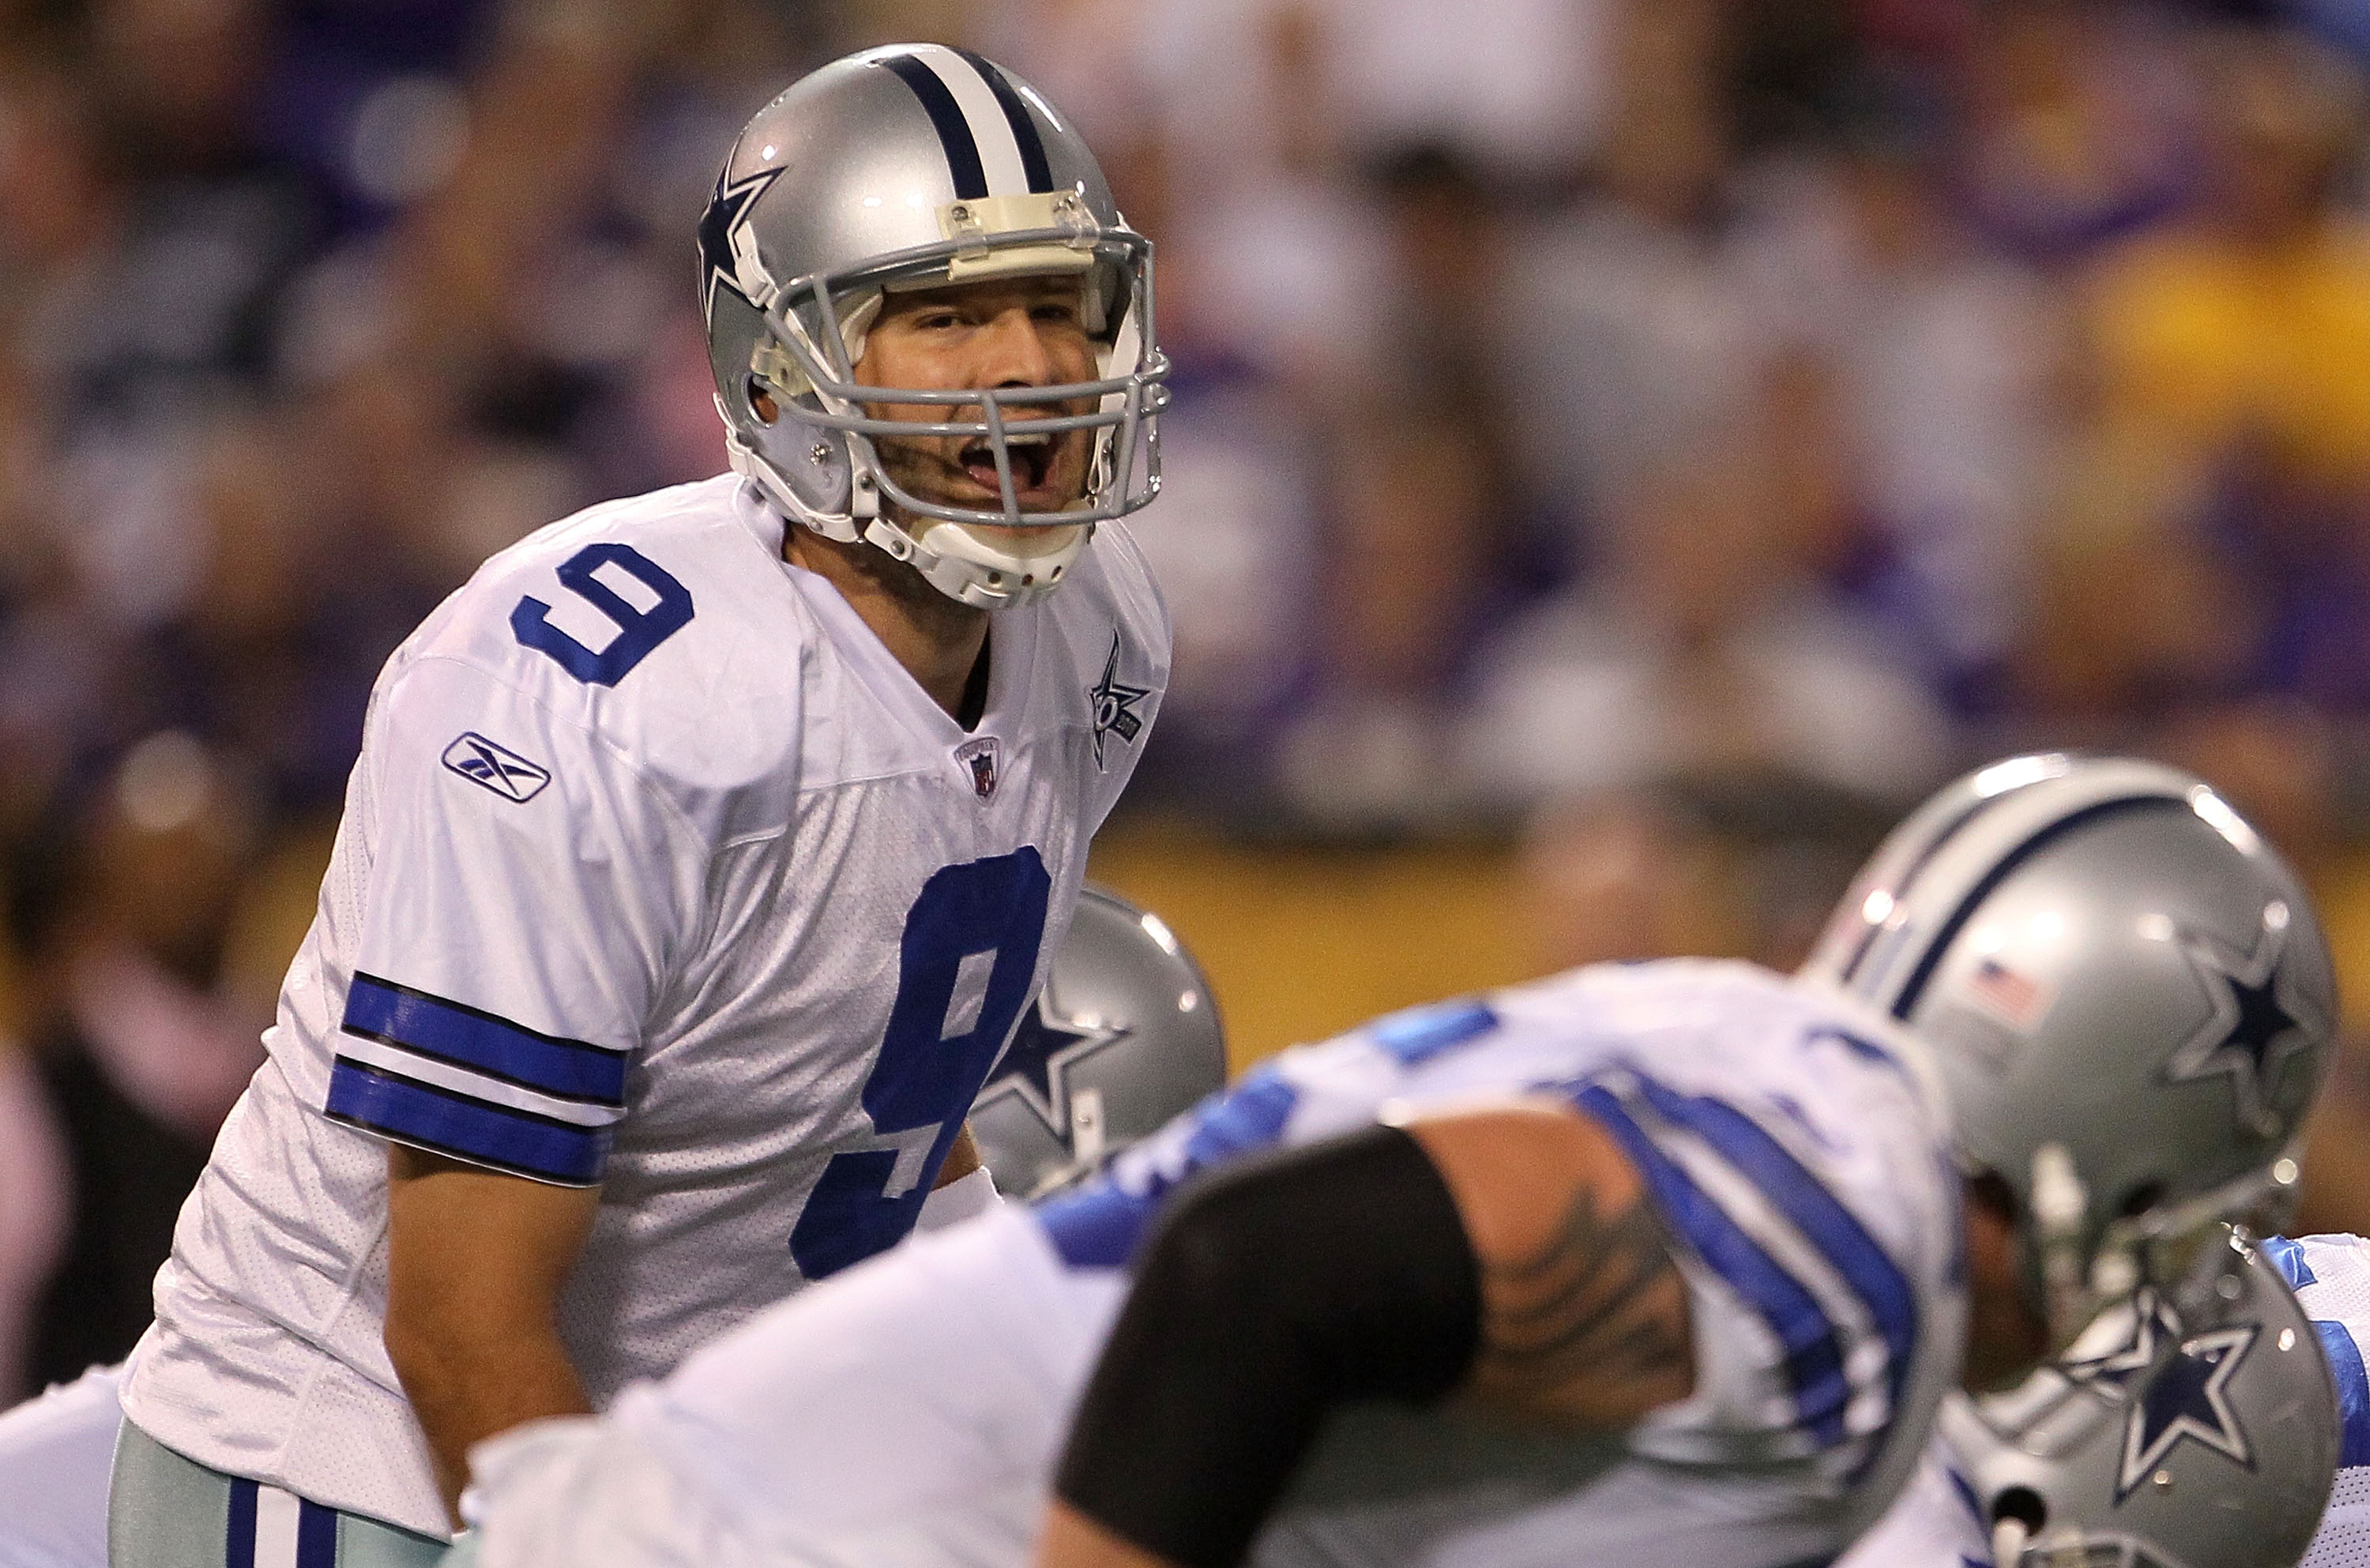 MINNEAPOLIS - OCTOBER 17:  Quarterback Tony Romo #9 of the Dallas Cowboys calls a play against the Minnesota Vikings at Mall of America Field on October 17, 2010 in Minneapolis, Minnesota.  (Photo by Jeff Gross/Getty Images)